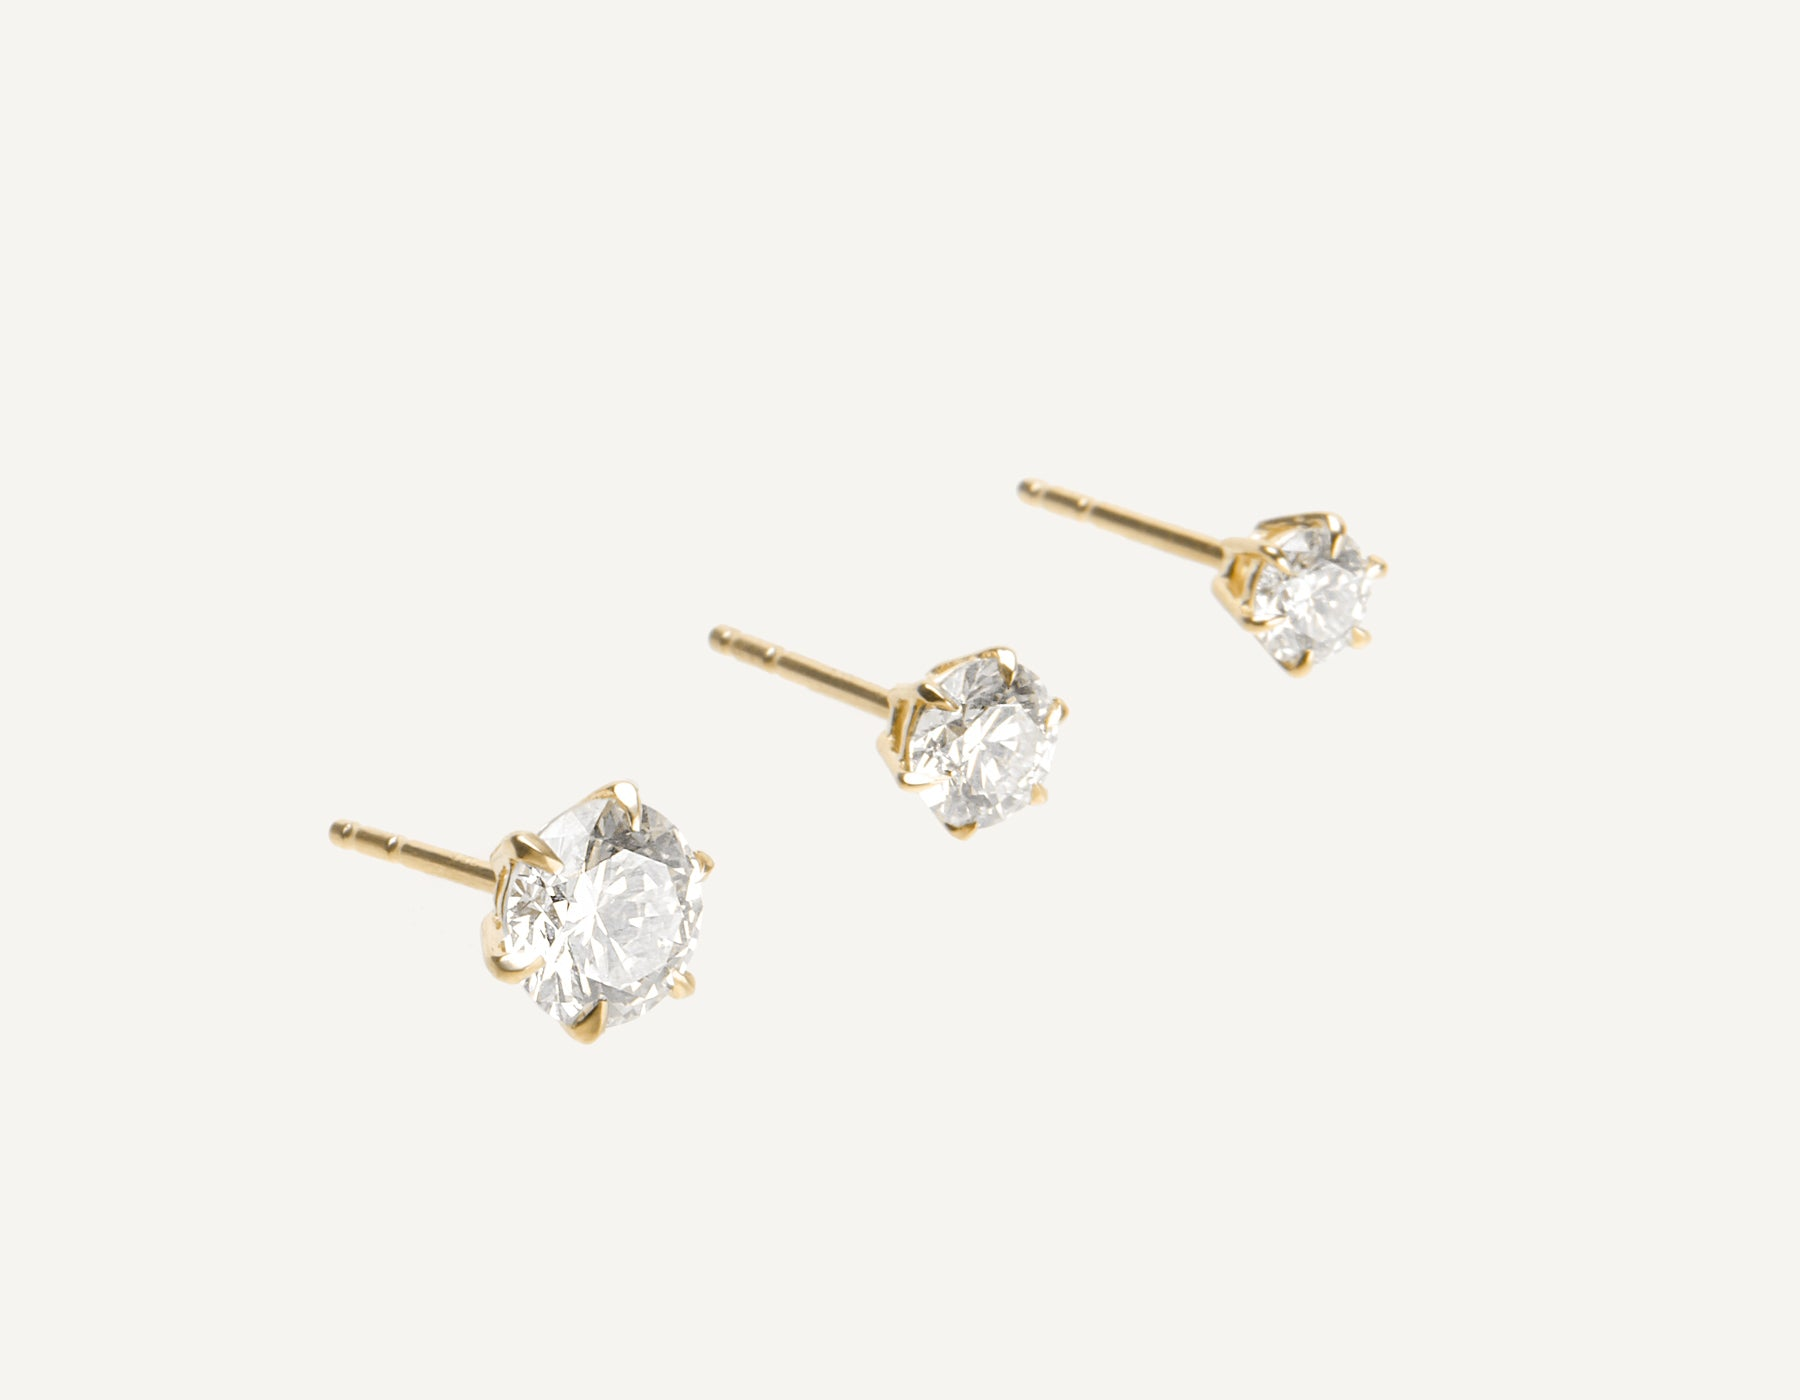 70e4281a6 Vrai & Oro 18K Solid Gold Round Brilliant Diamond Earring Post 1 ct .50 ct